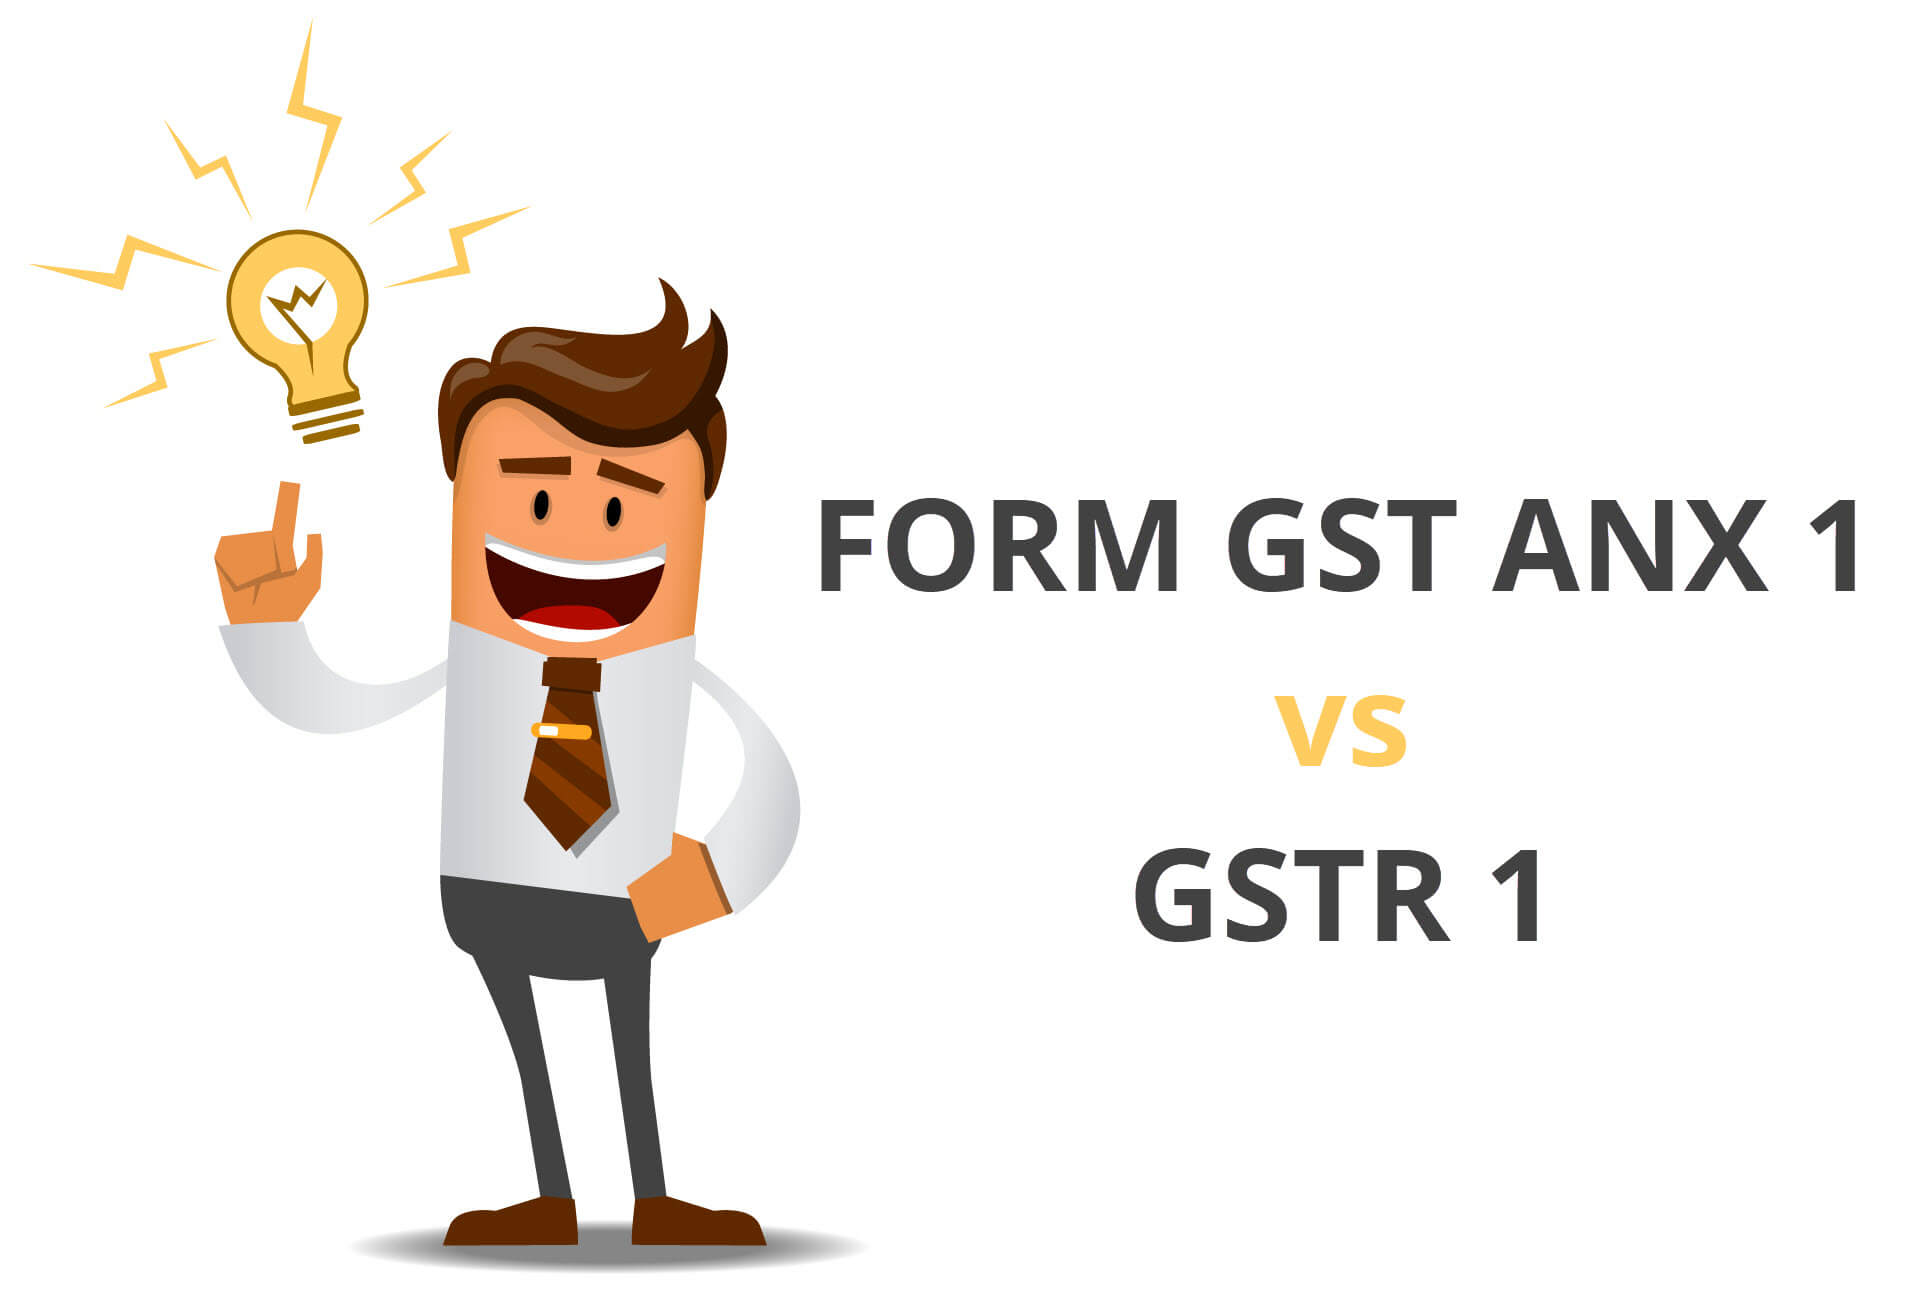 form gst anx 1